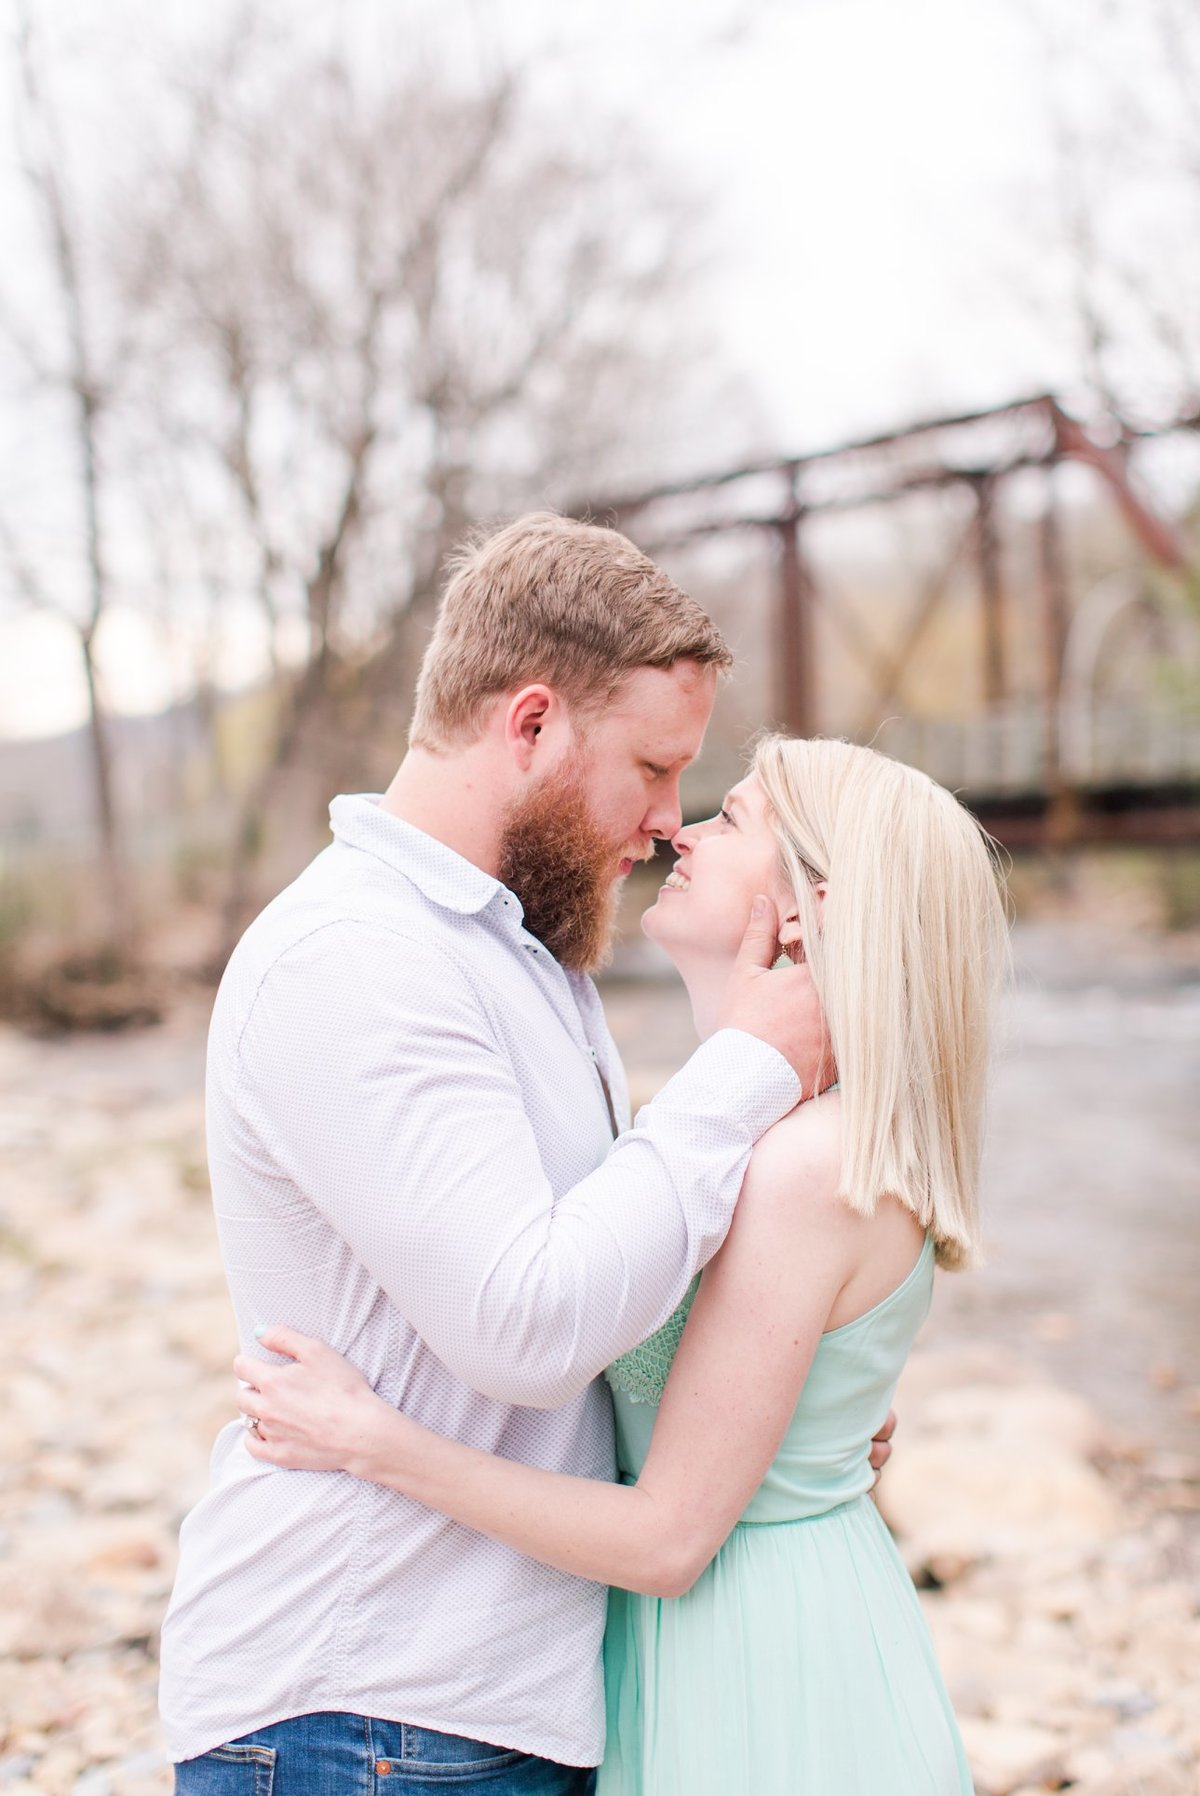 elizabethhillphotography-couples-session-virginia-02